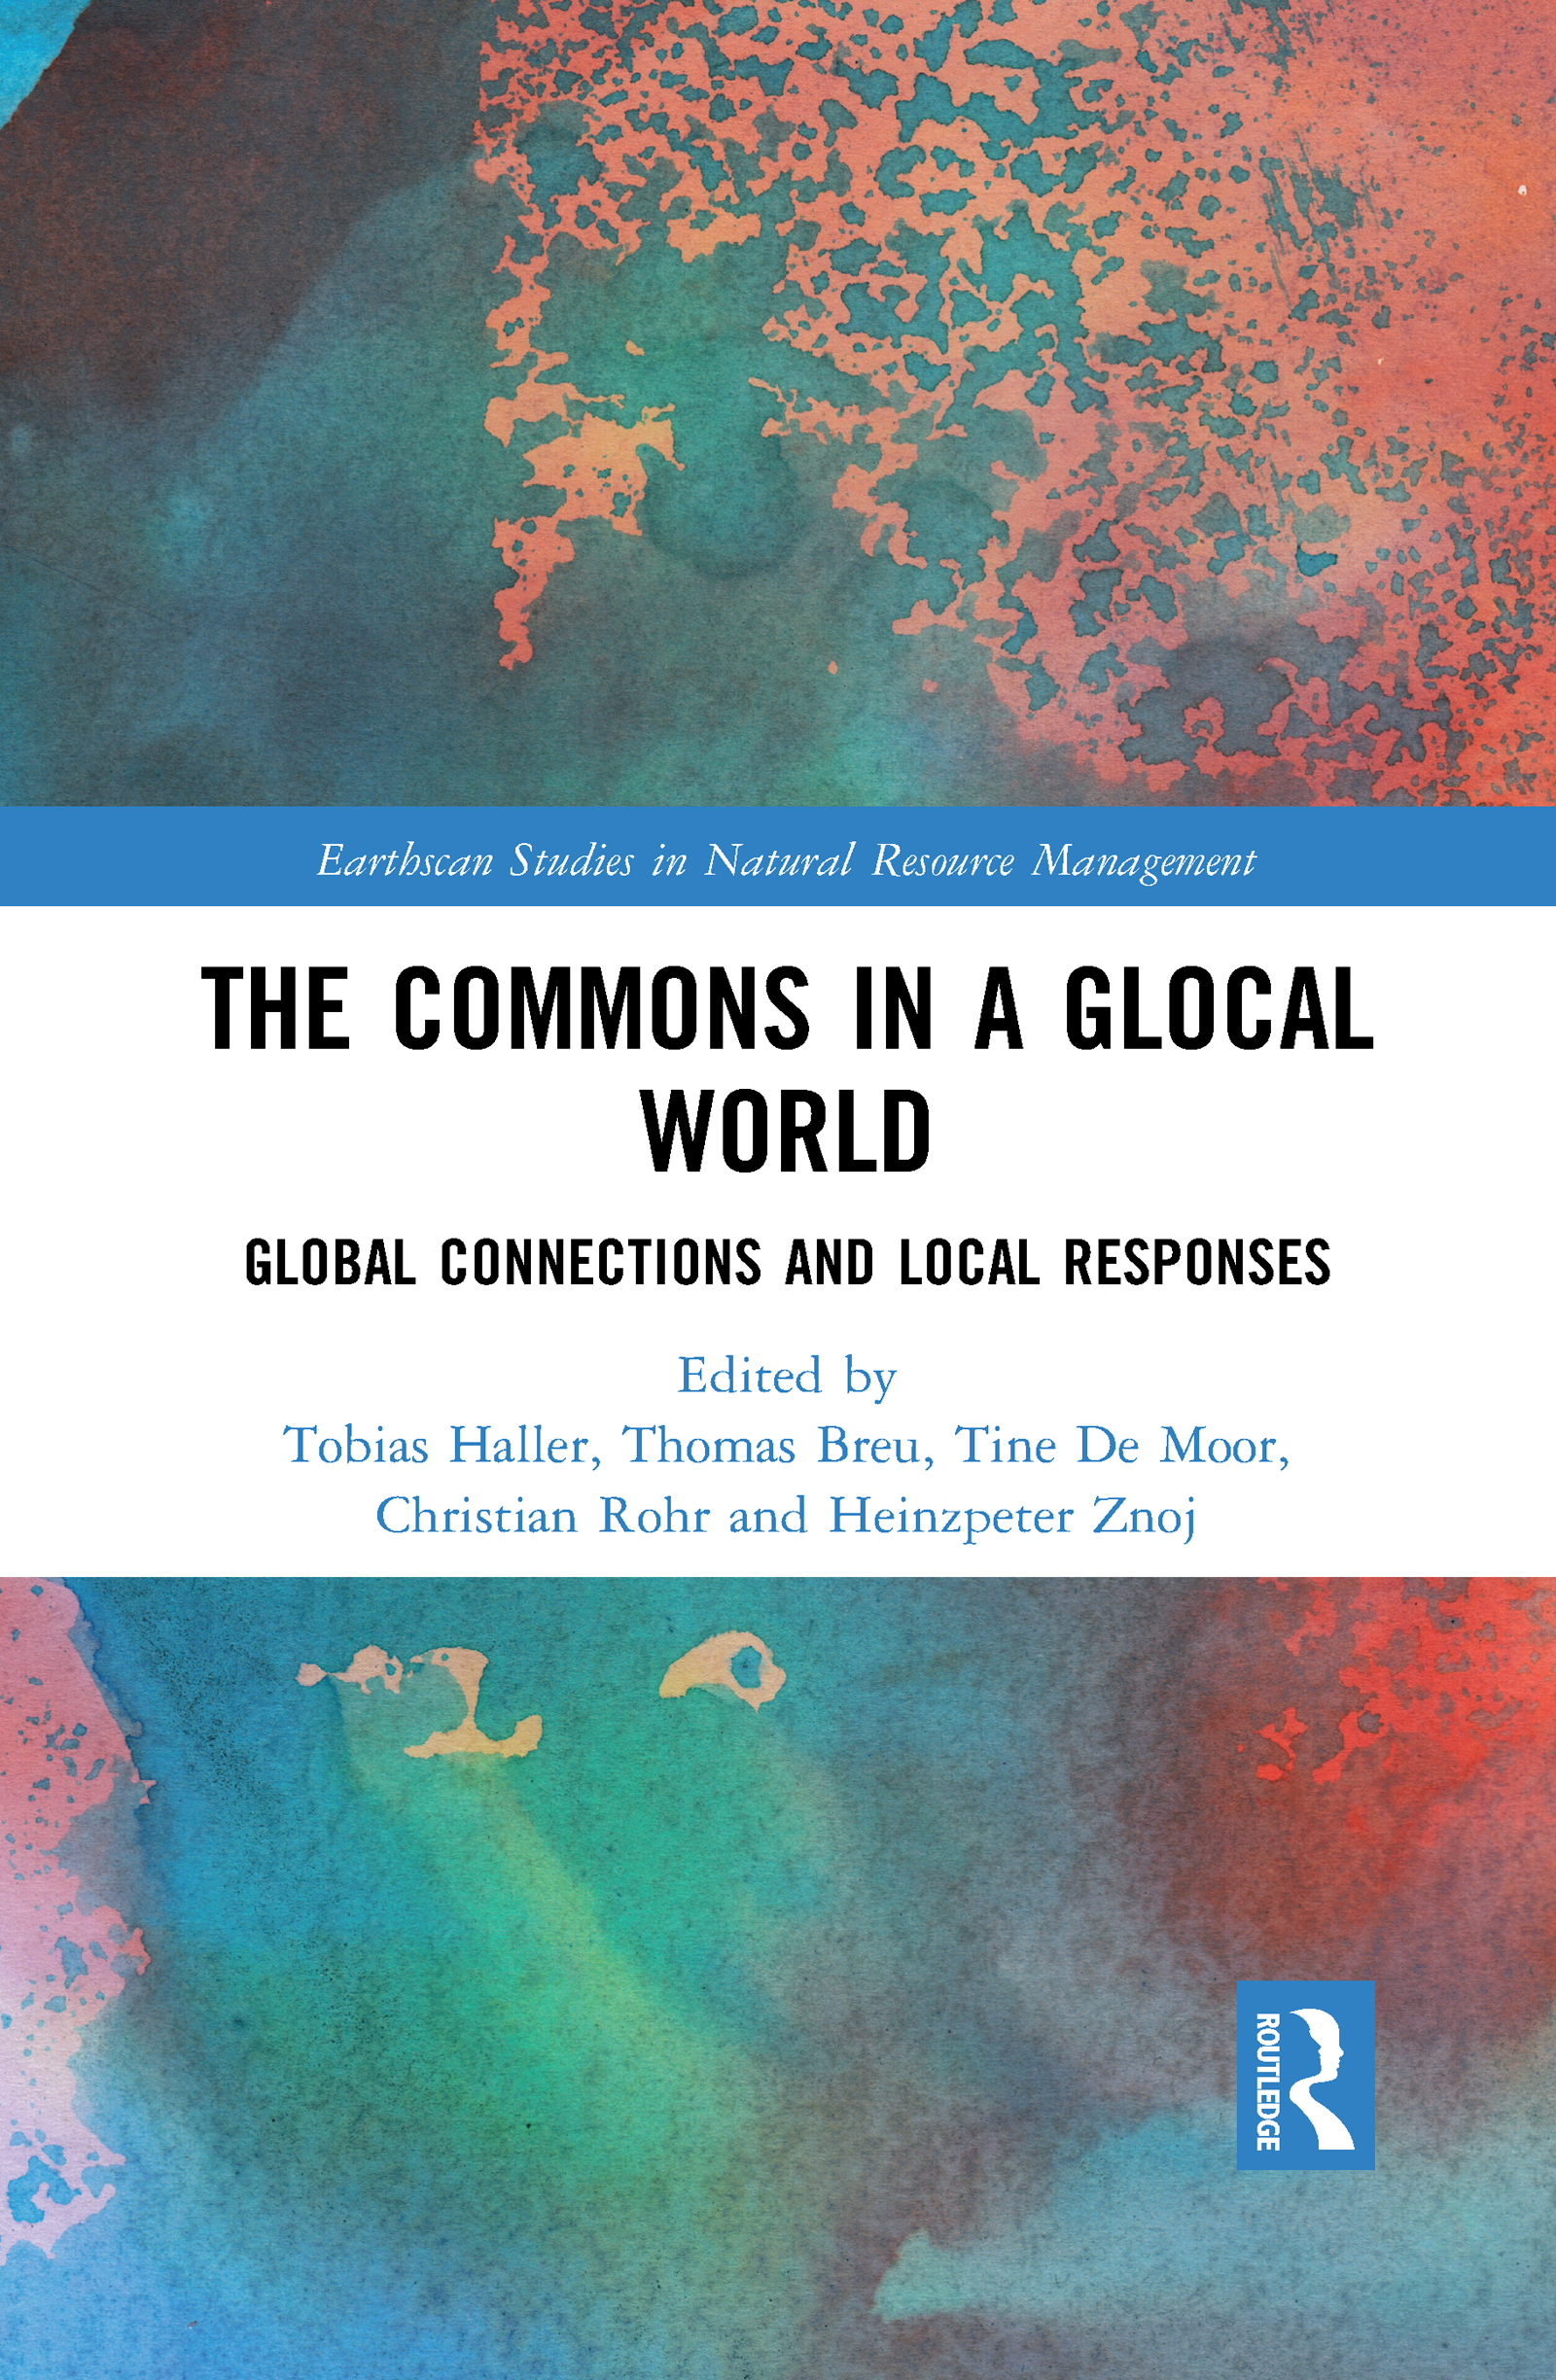 The Commons in a Glocal World